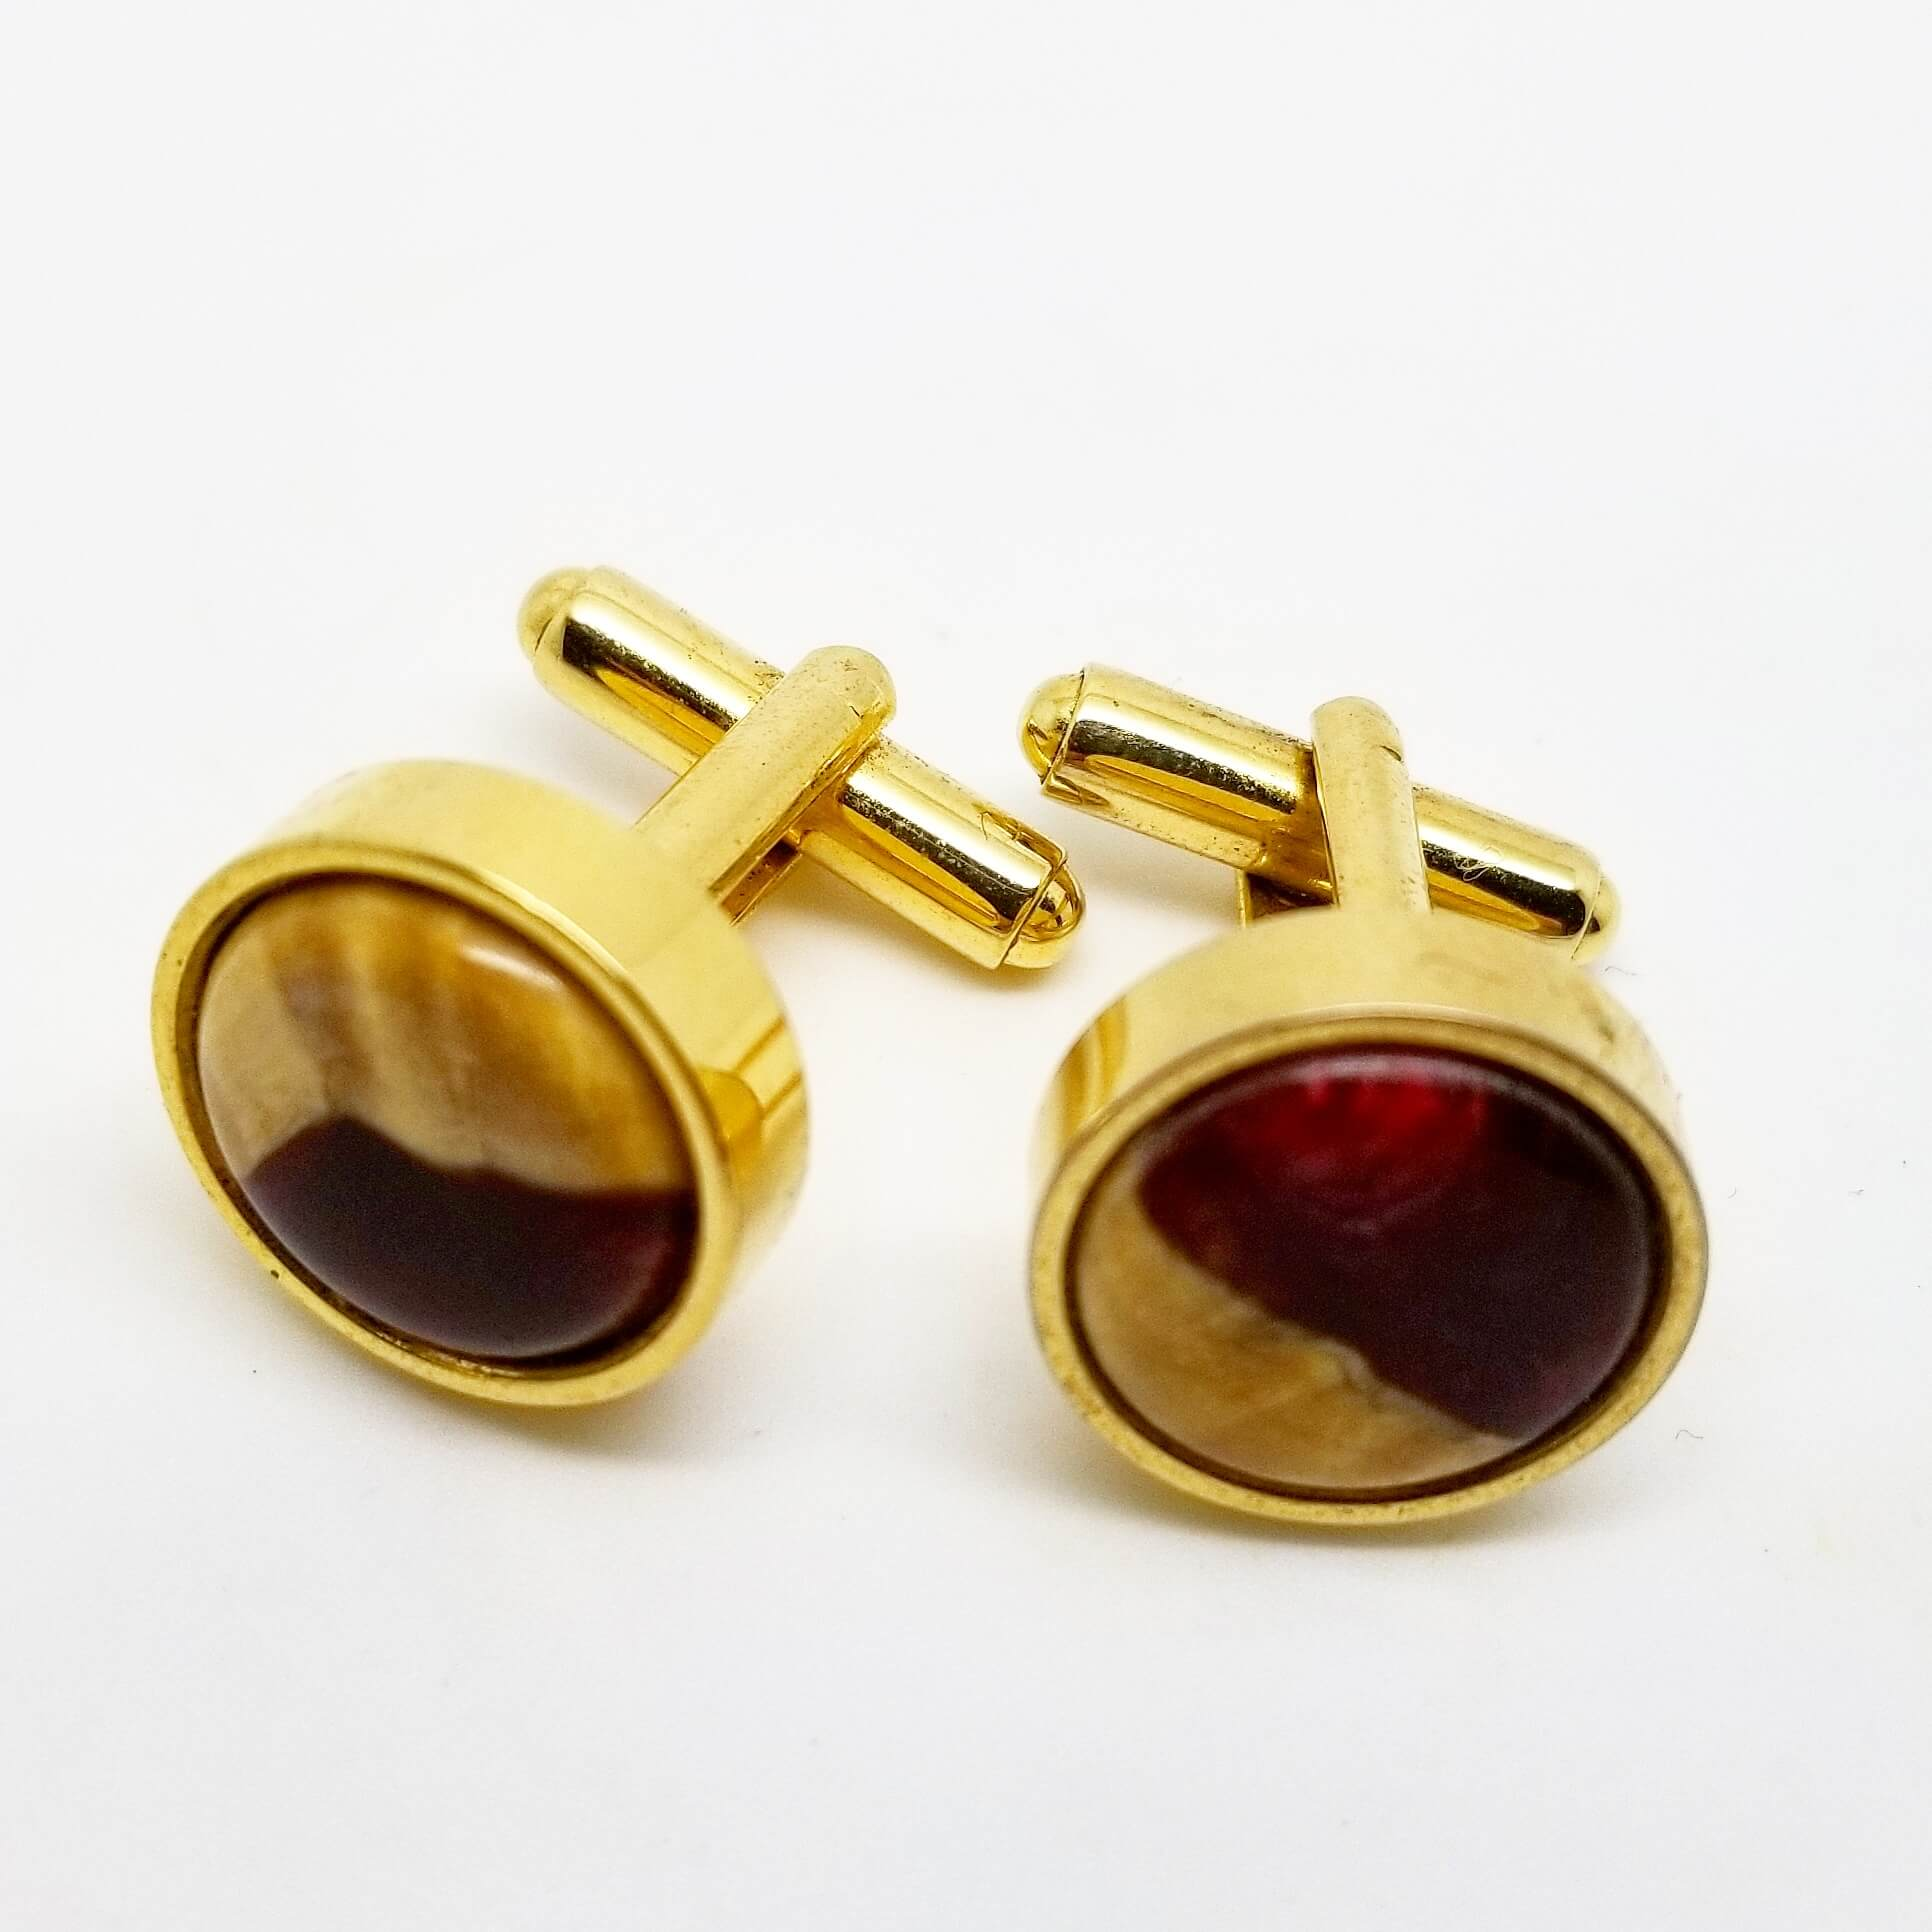 Fiji Burgundy Cufflinks